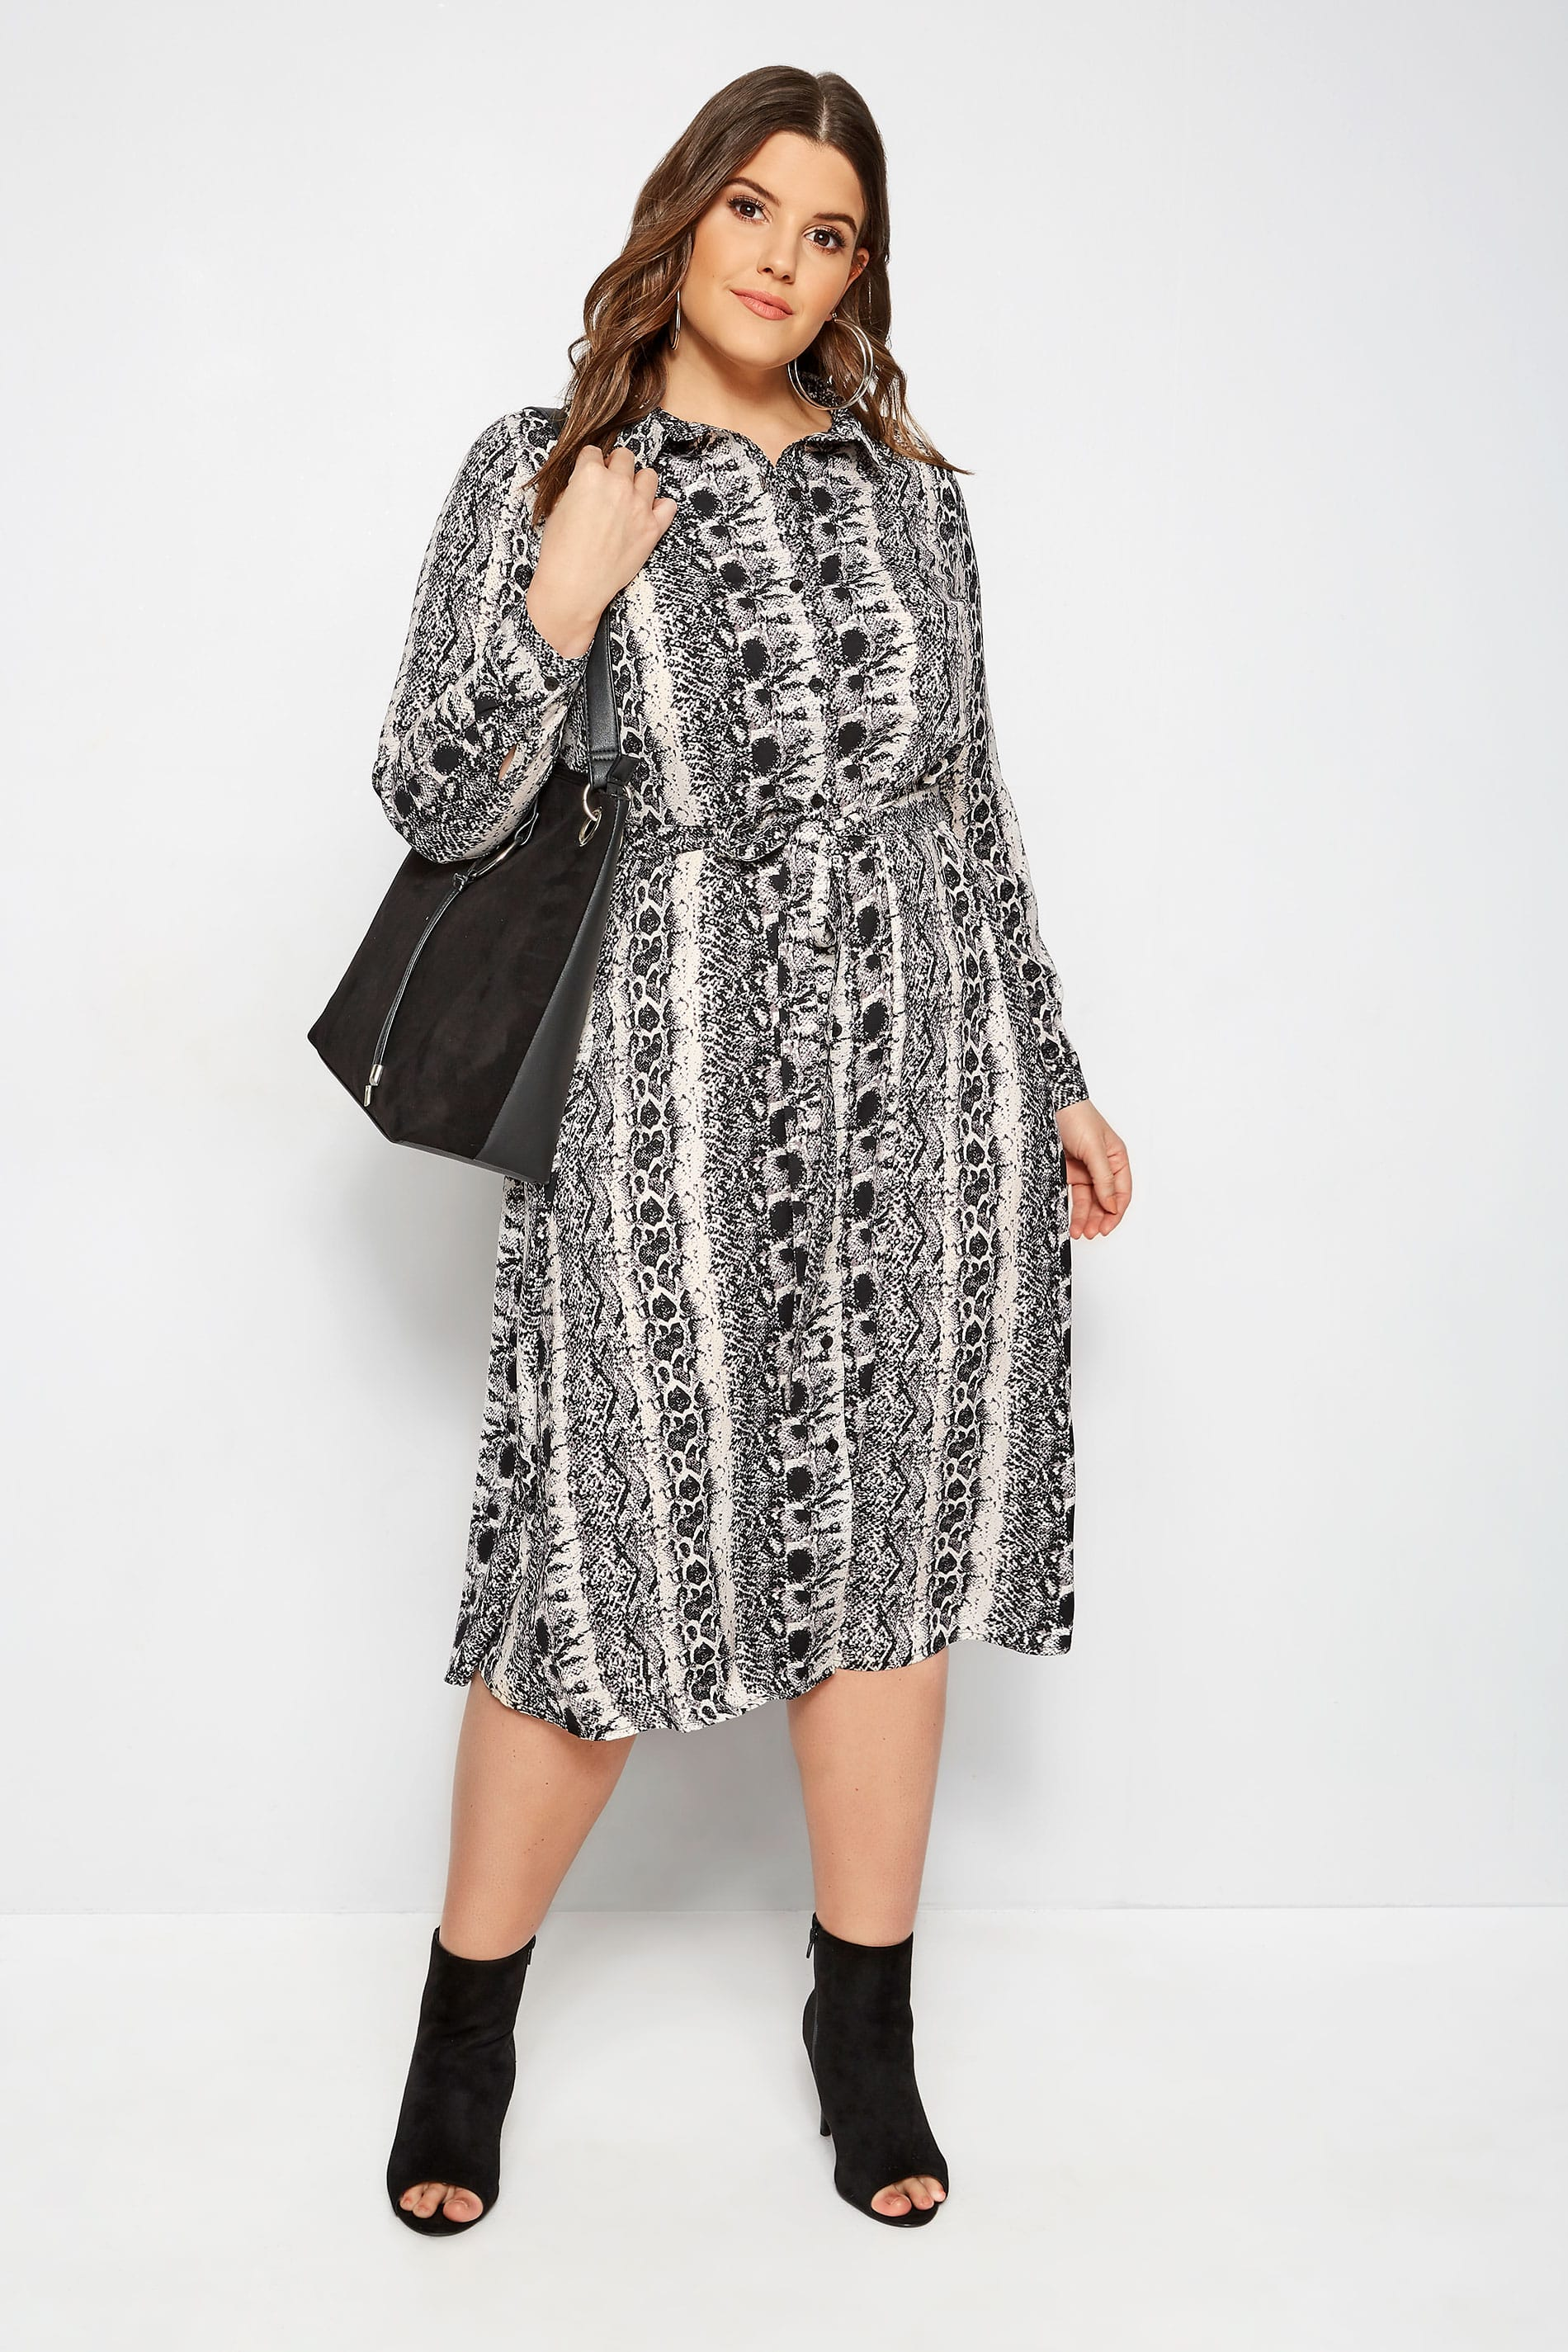 55ae50be3e7 Plus Size Snake Print Shirt Dress | Sizes 16 to 36 | Yours Clothing